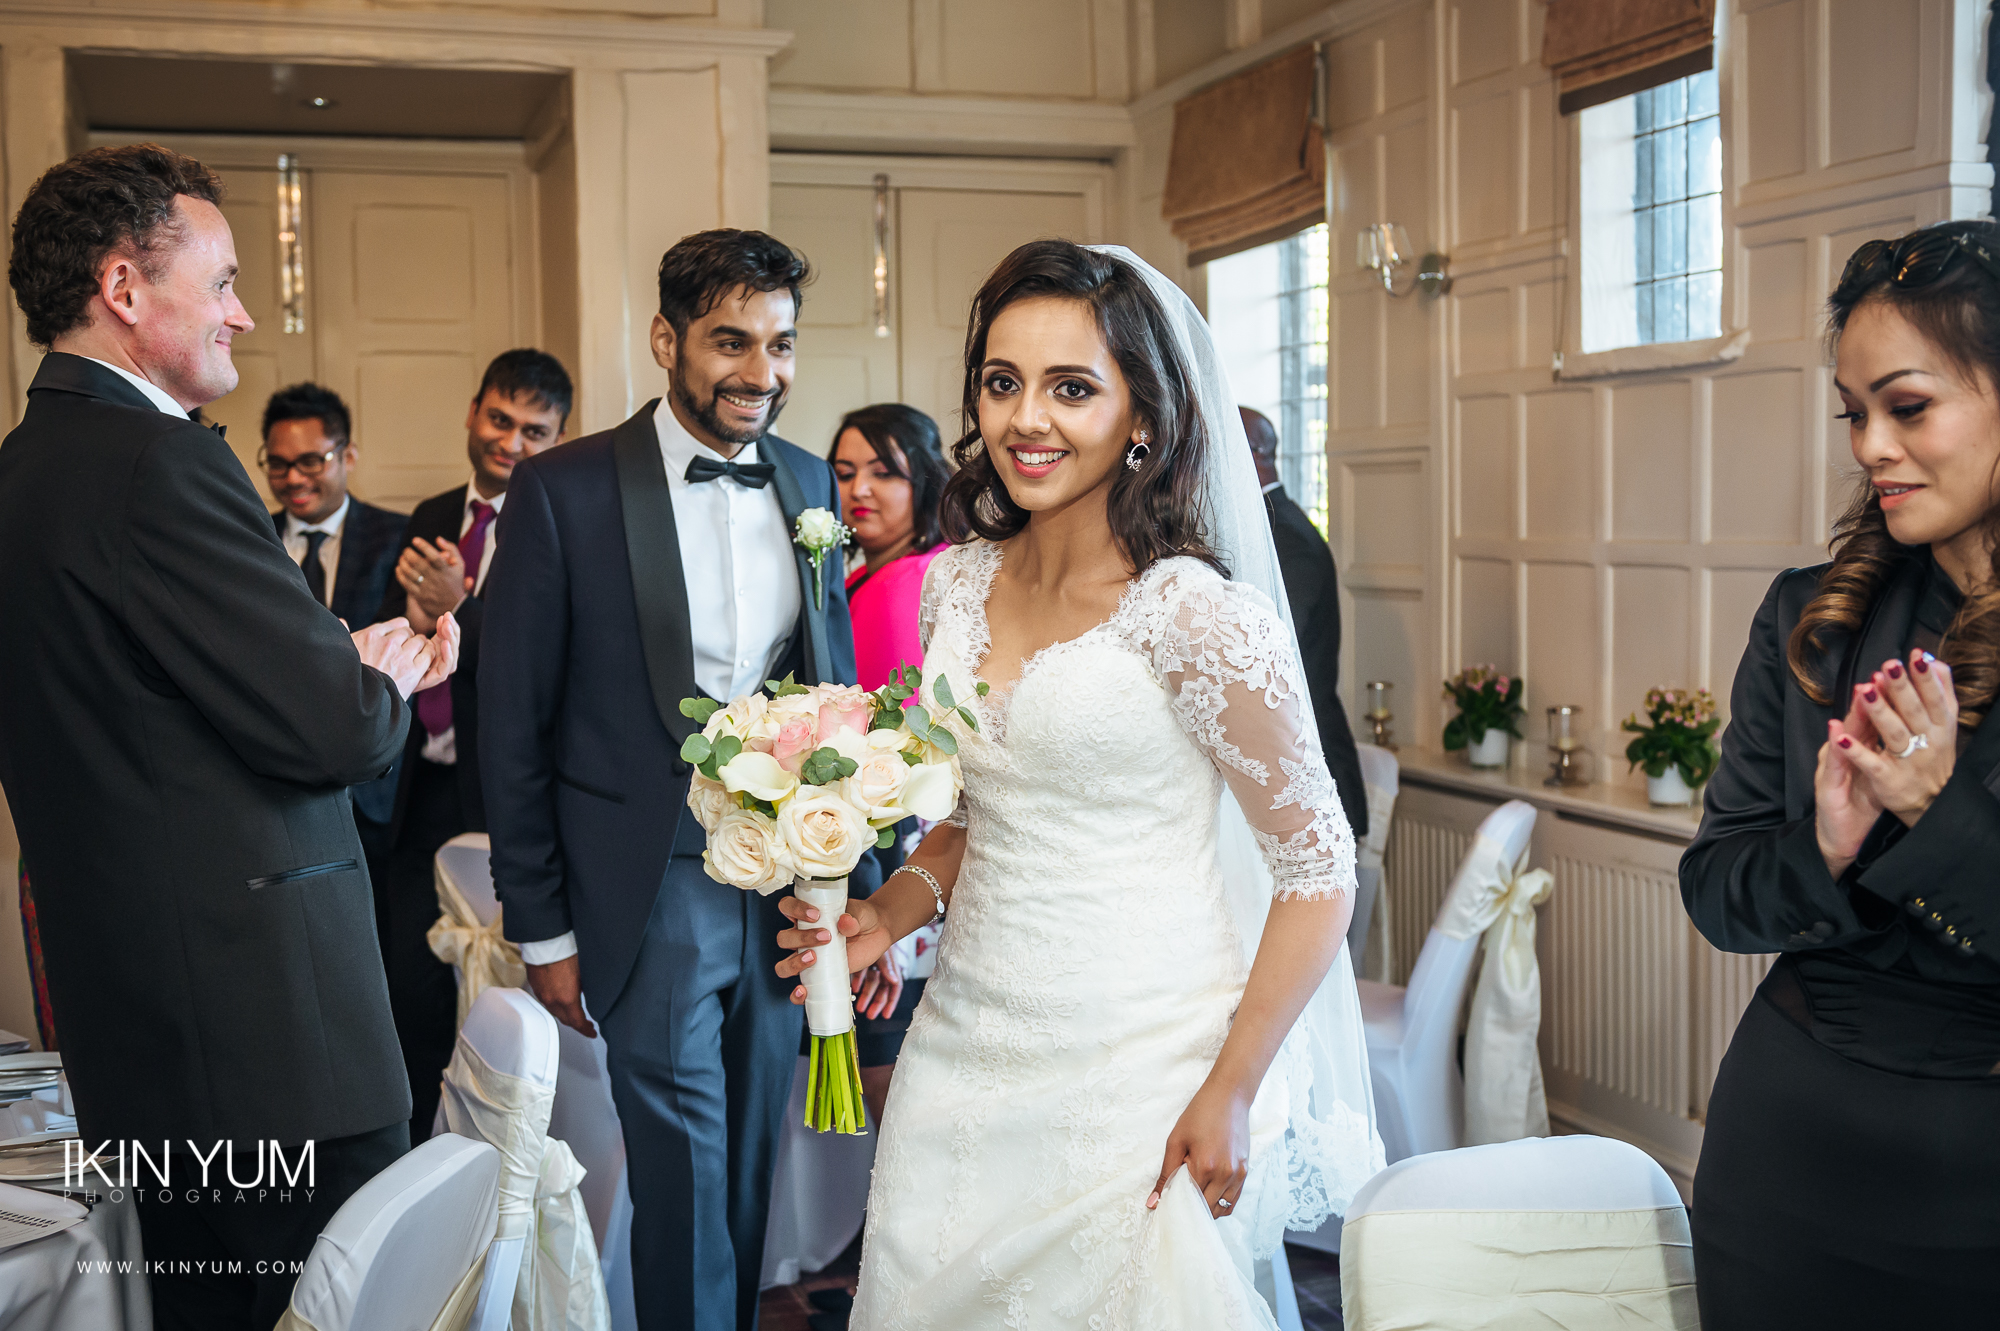 Laura Ashley Manor Wedding - Ikin Yum Photography-110.jpg